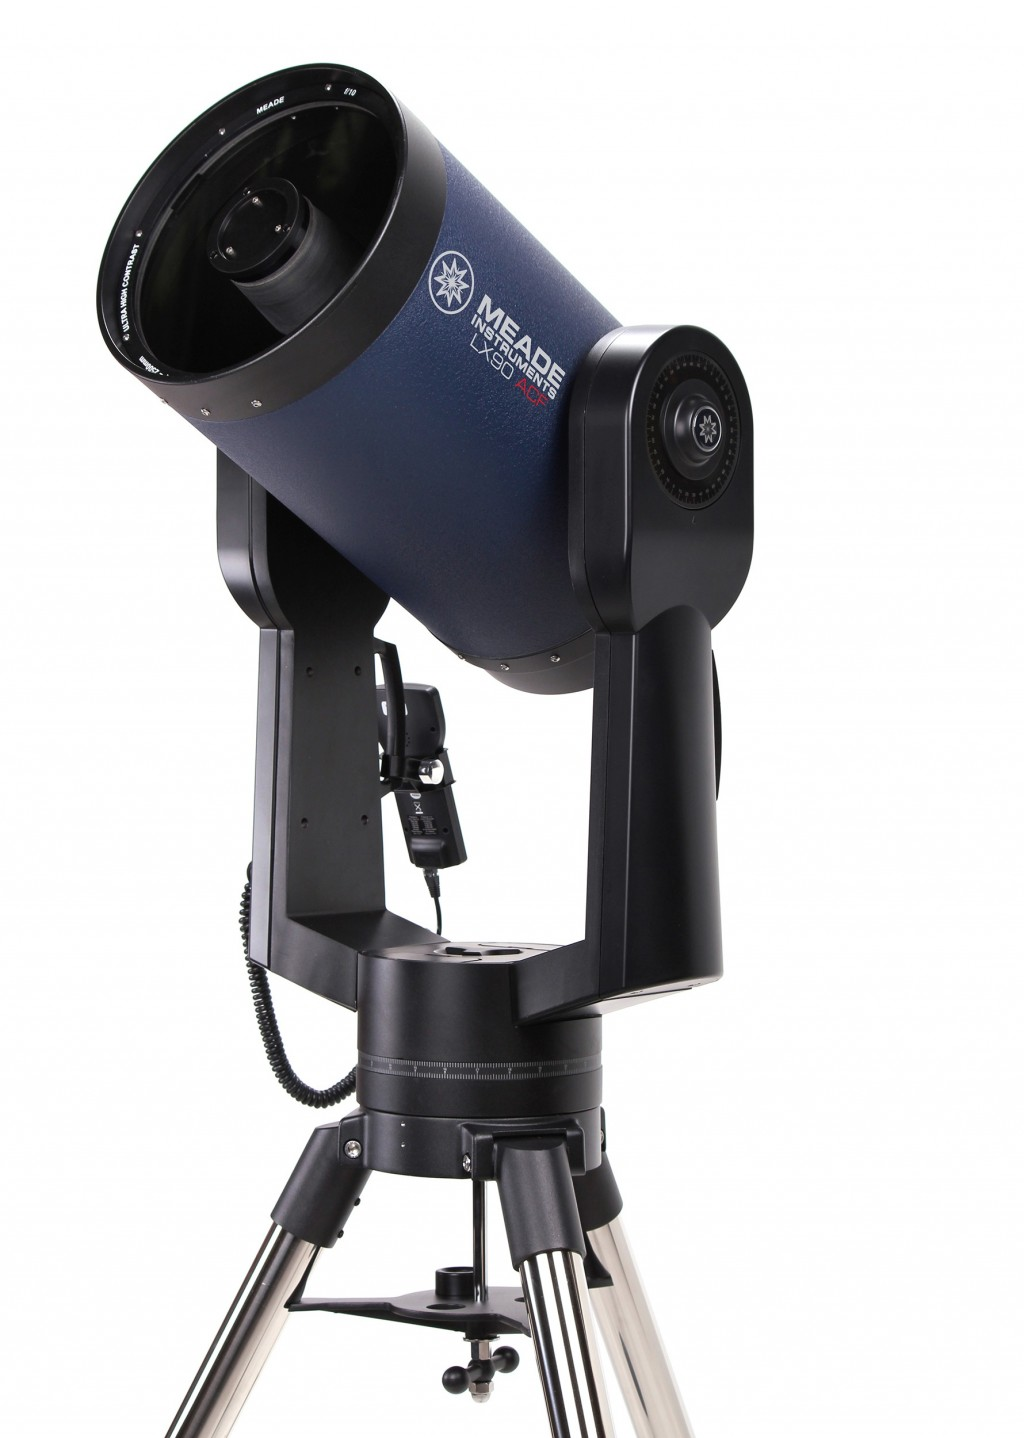 Meade 10 Inch LX90-ACF Advanced Coma Free w/GPS w/UHTC Coatings